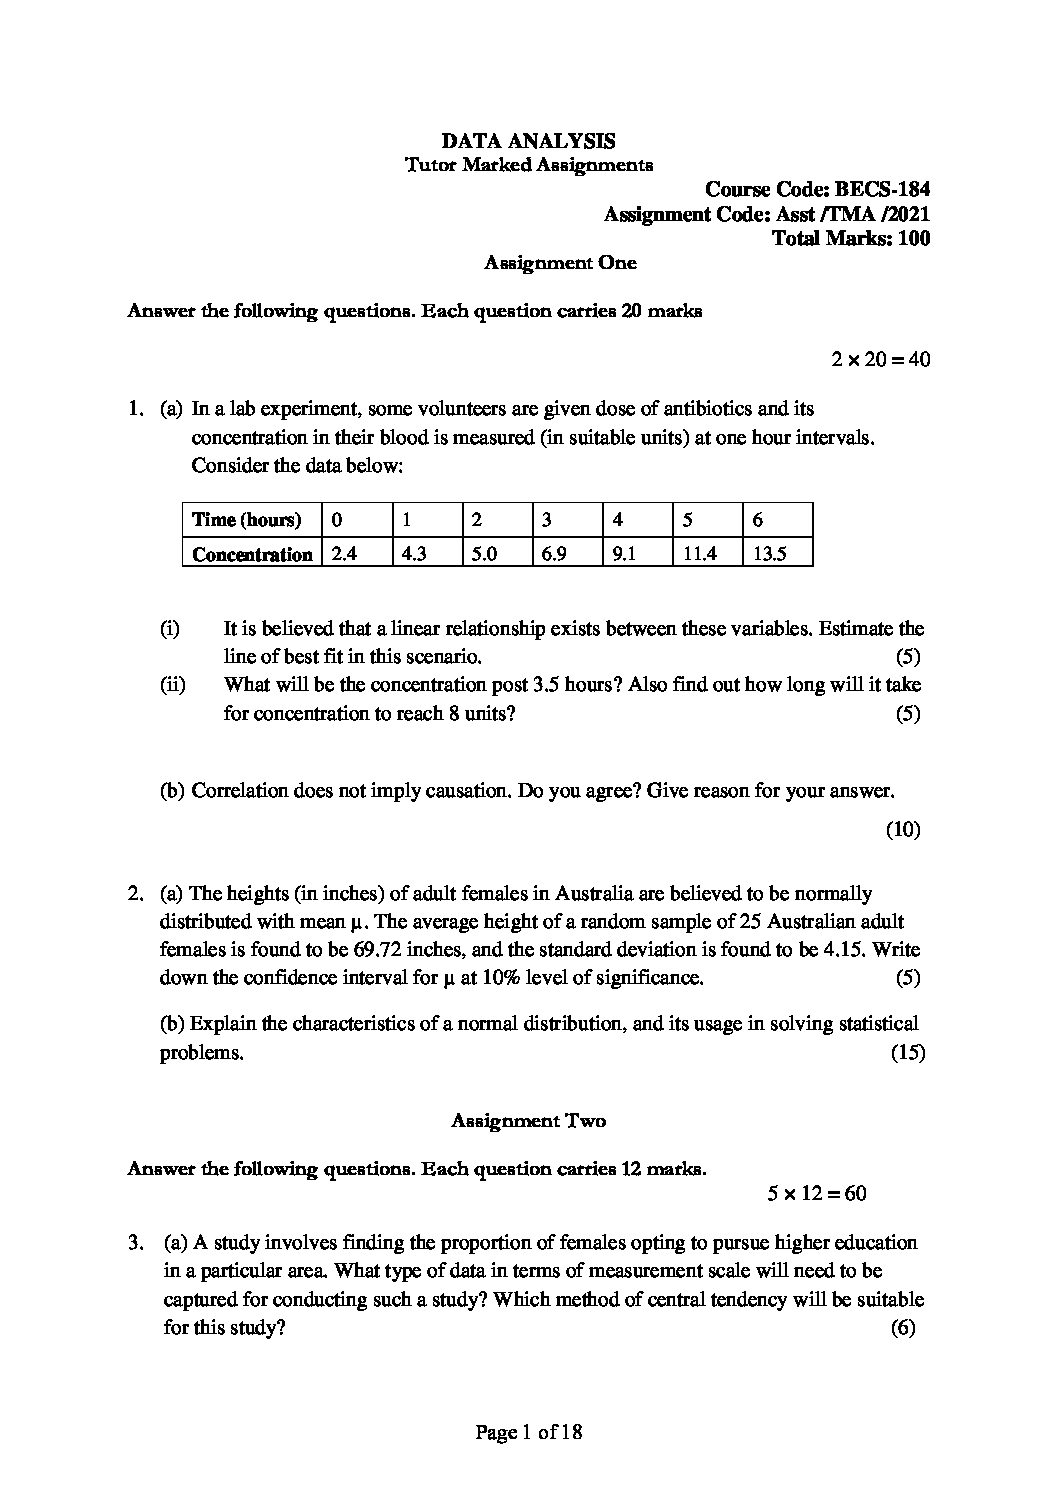 BECS-184 DATA ANALYSIS in English Solved Assignment 2020-2021